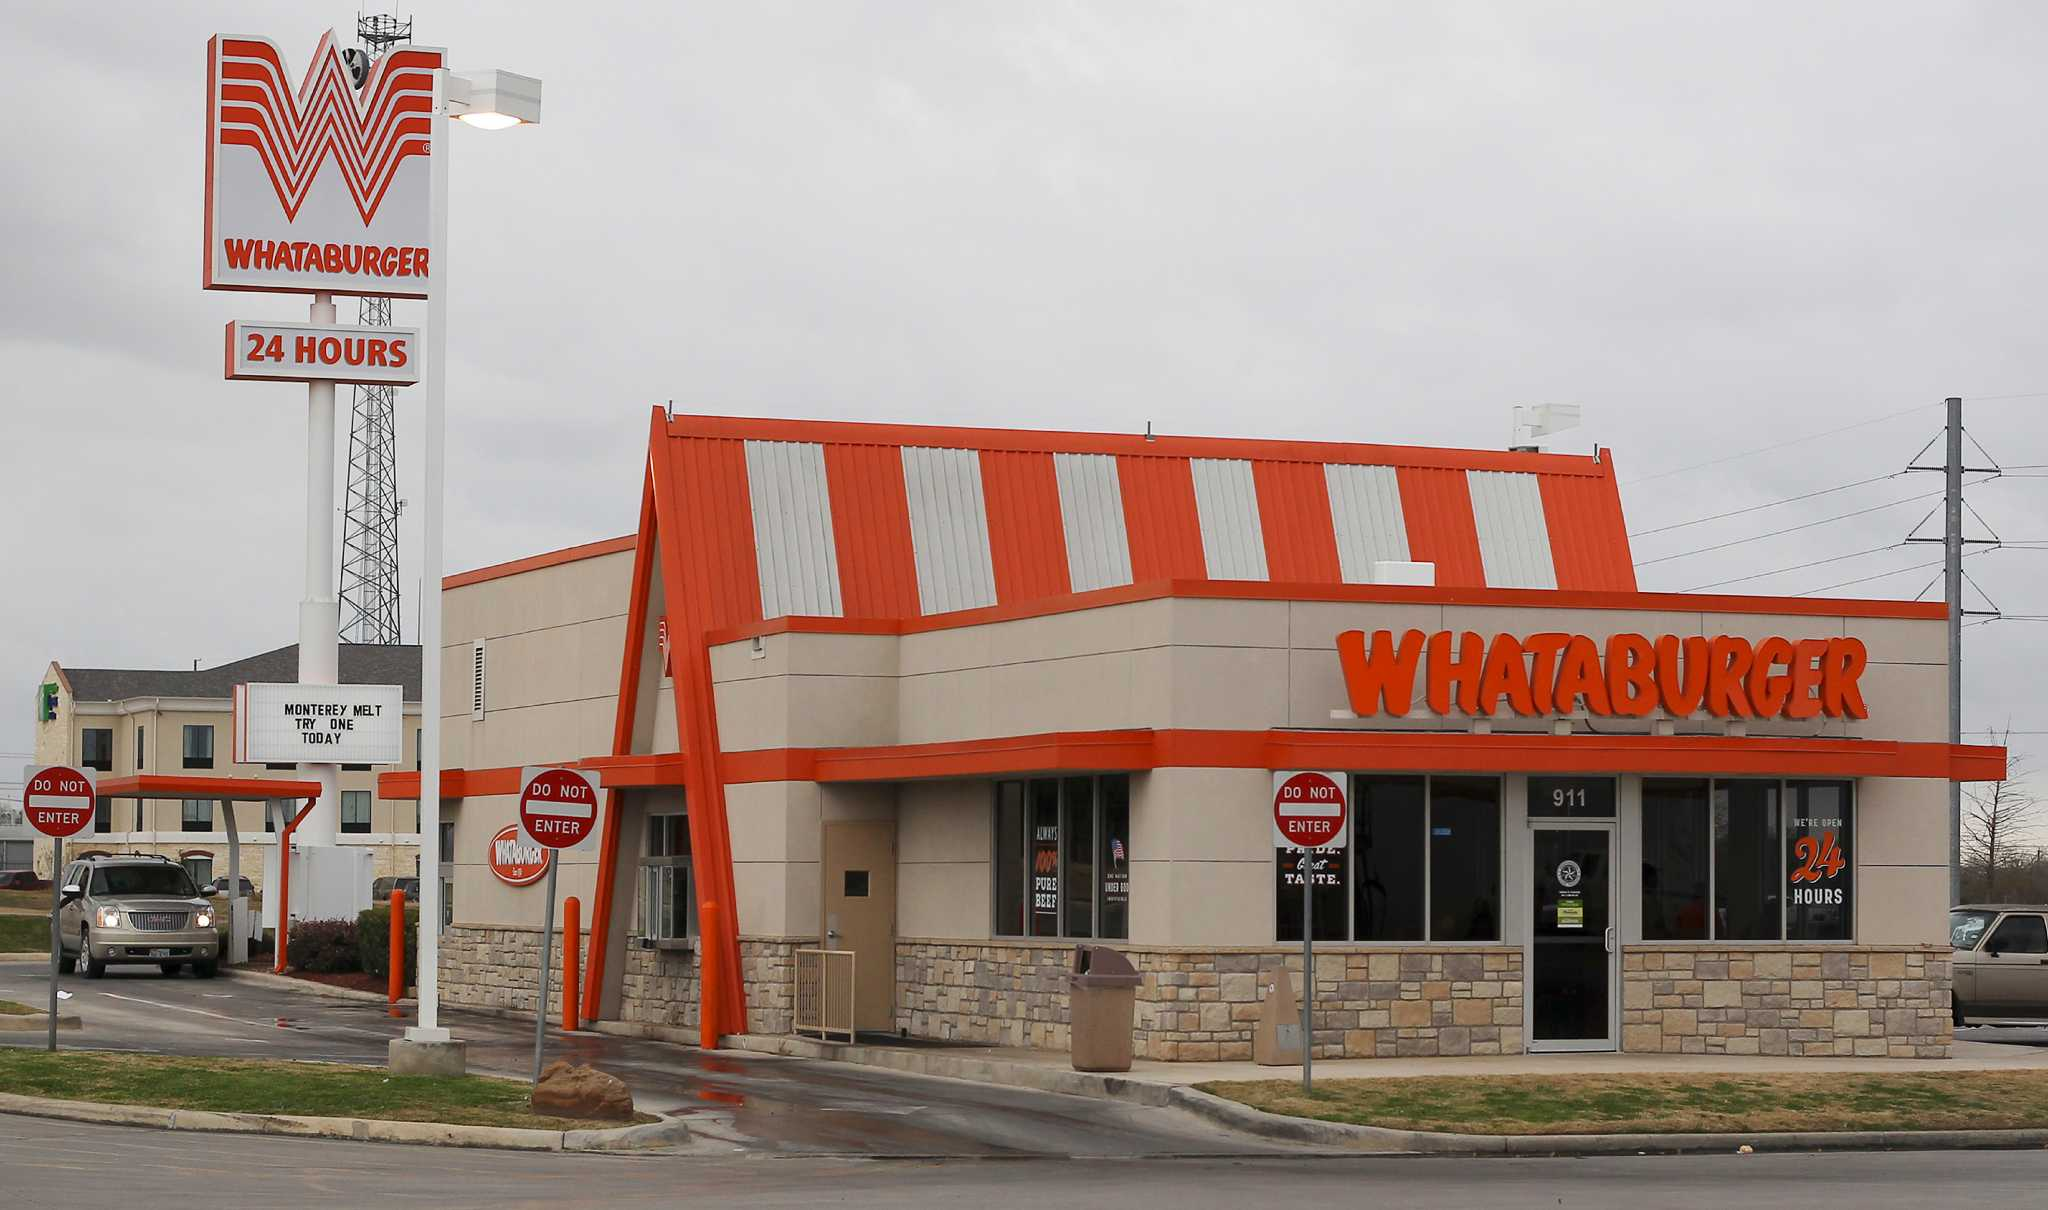 WhataBurger - San Antonio, TX - yelp.com